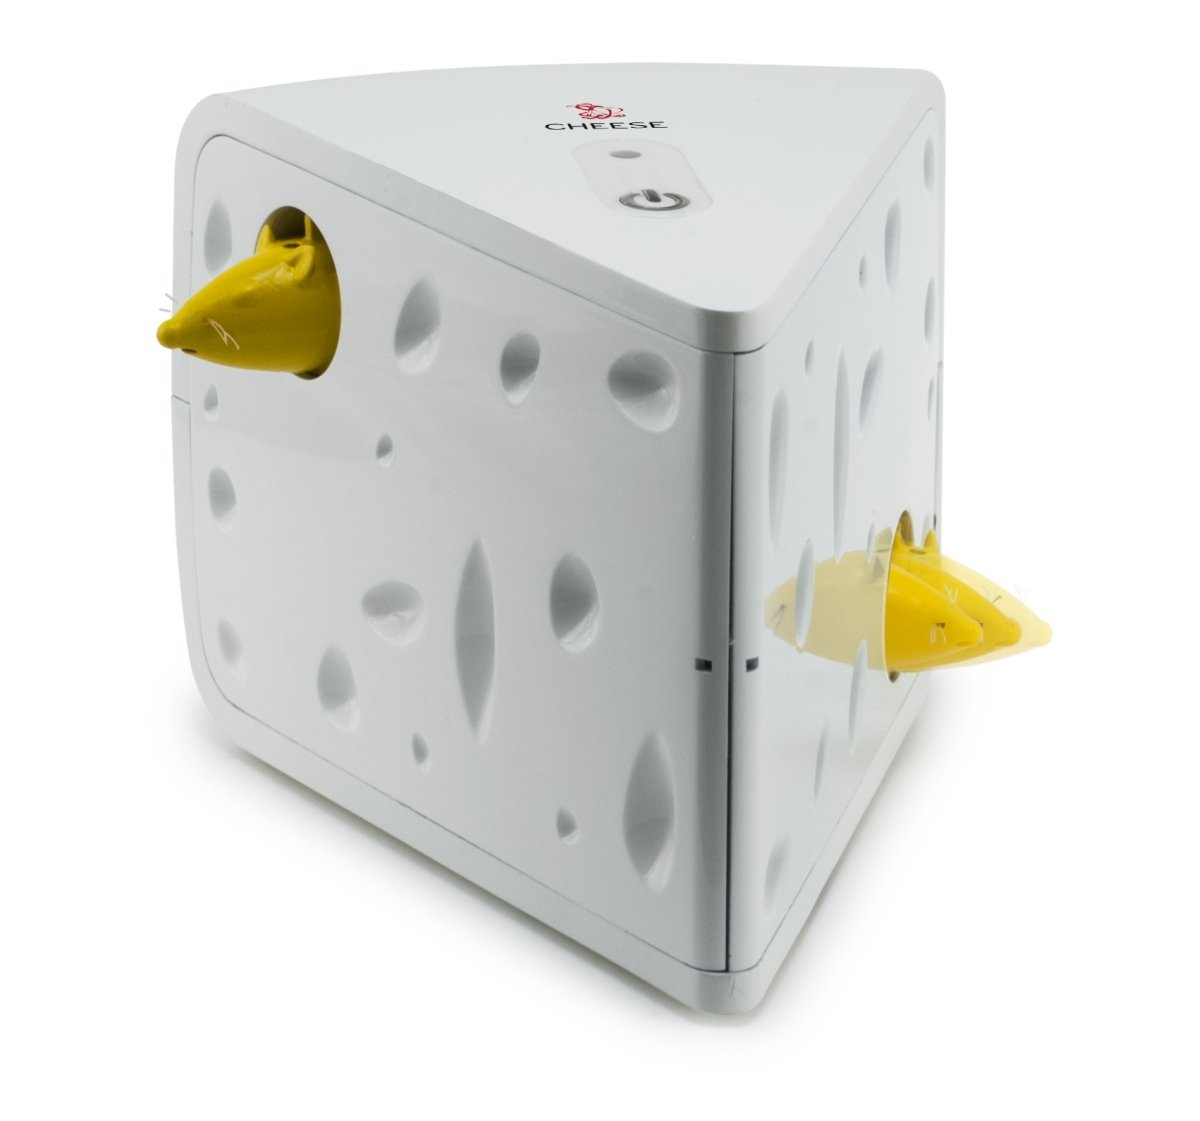 Petsafe&reg: Cheese Automatic Cat Toy